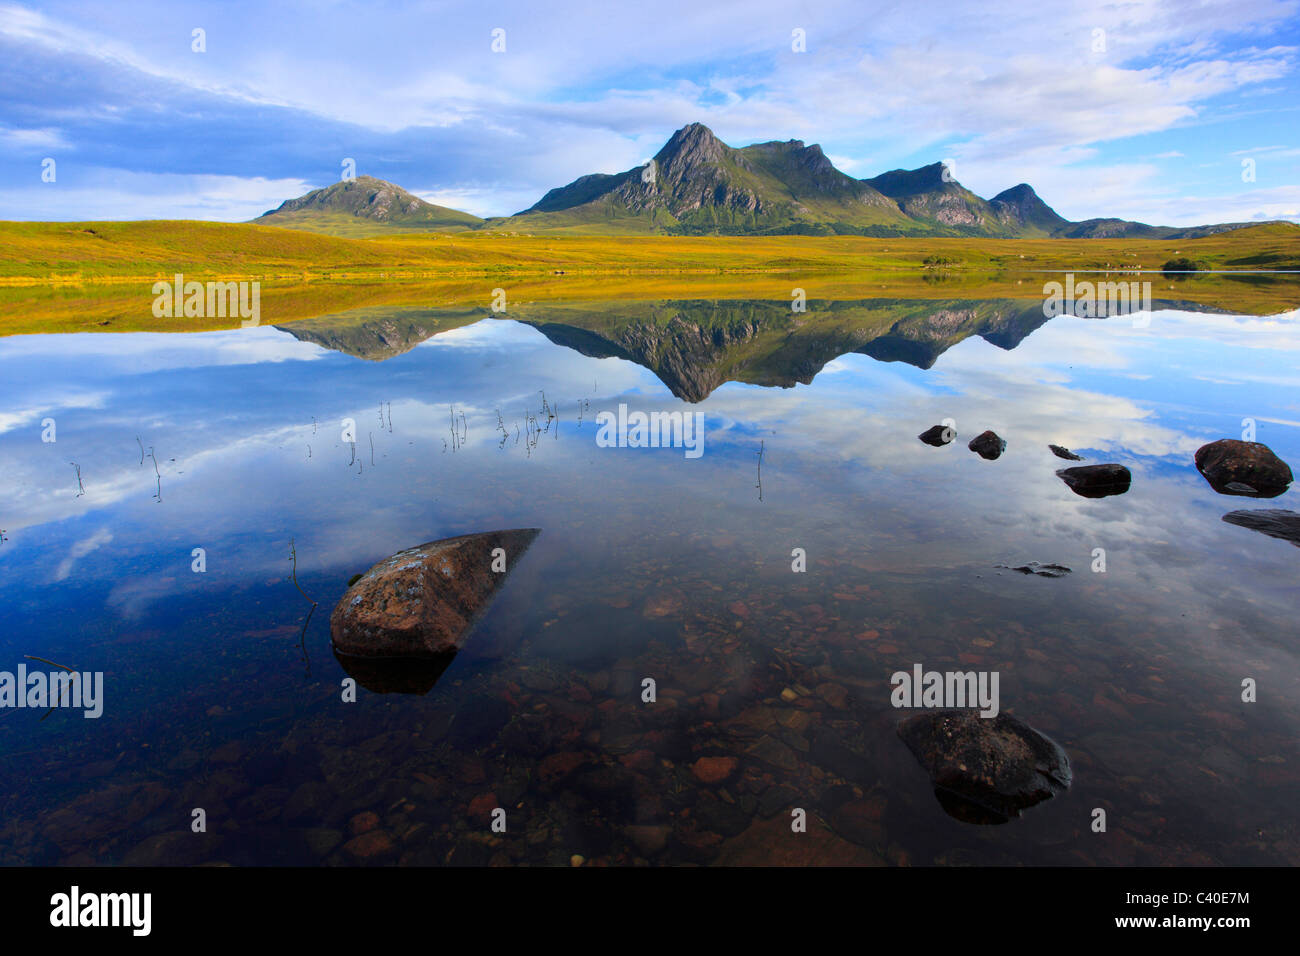 Evening, evening mood, Ben Loyal, mountain, mountains, mountains, bodies of water, summits, peaks, Highland, highlands, - Stock Image